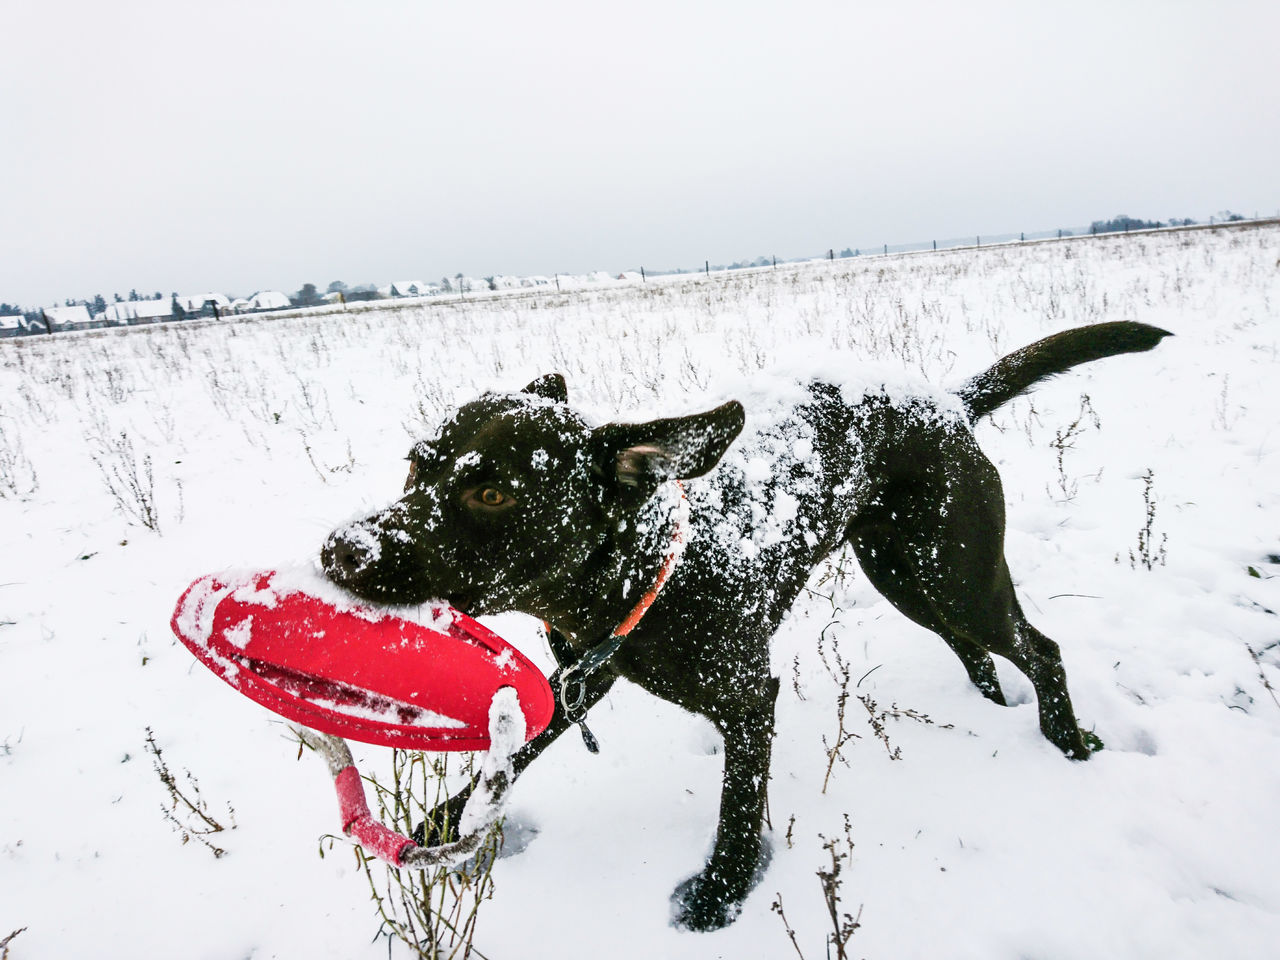 Dog Pets Animal Themes One Animal No People Domestic Animals White Background Day Motion Snow Running Dog Brown Labrador  Dog In Snow Snowy Dog